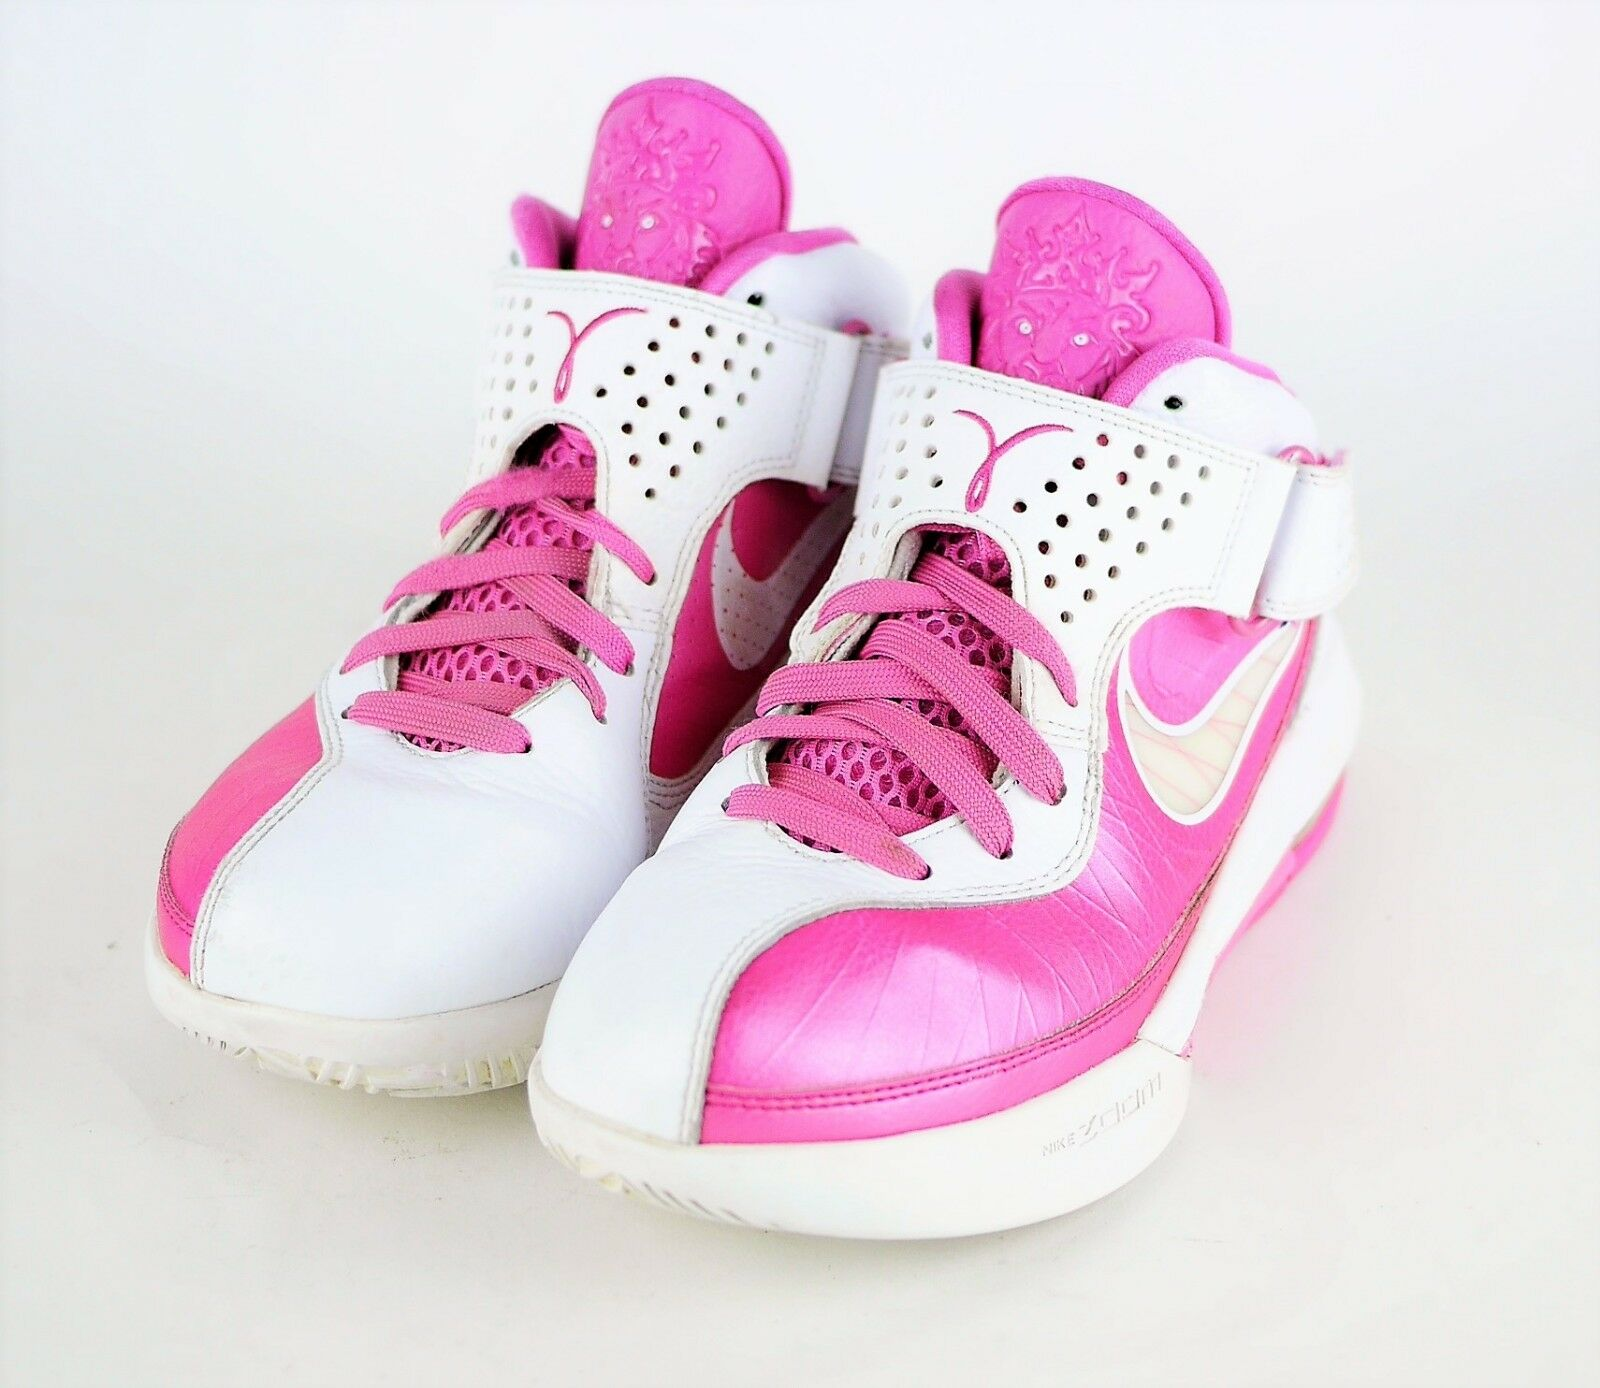 NIKE LEBRON JAMES Wm's 7.5 PINK BREAST CANCER AWARENESS HIGH TOP SNEAKERS SHOES